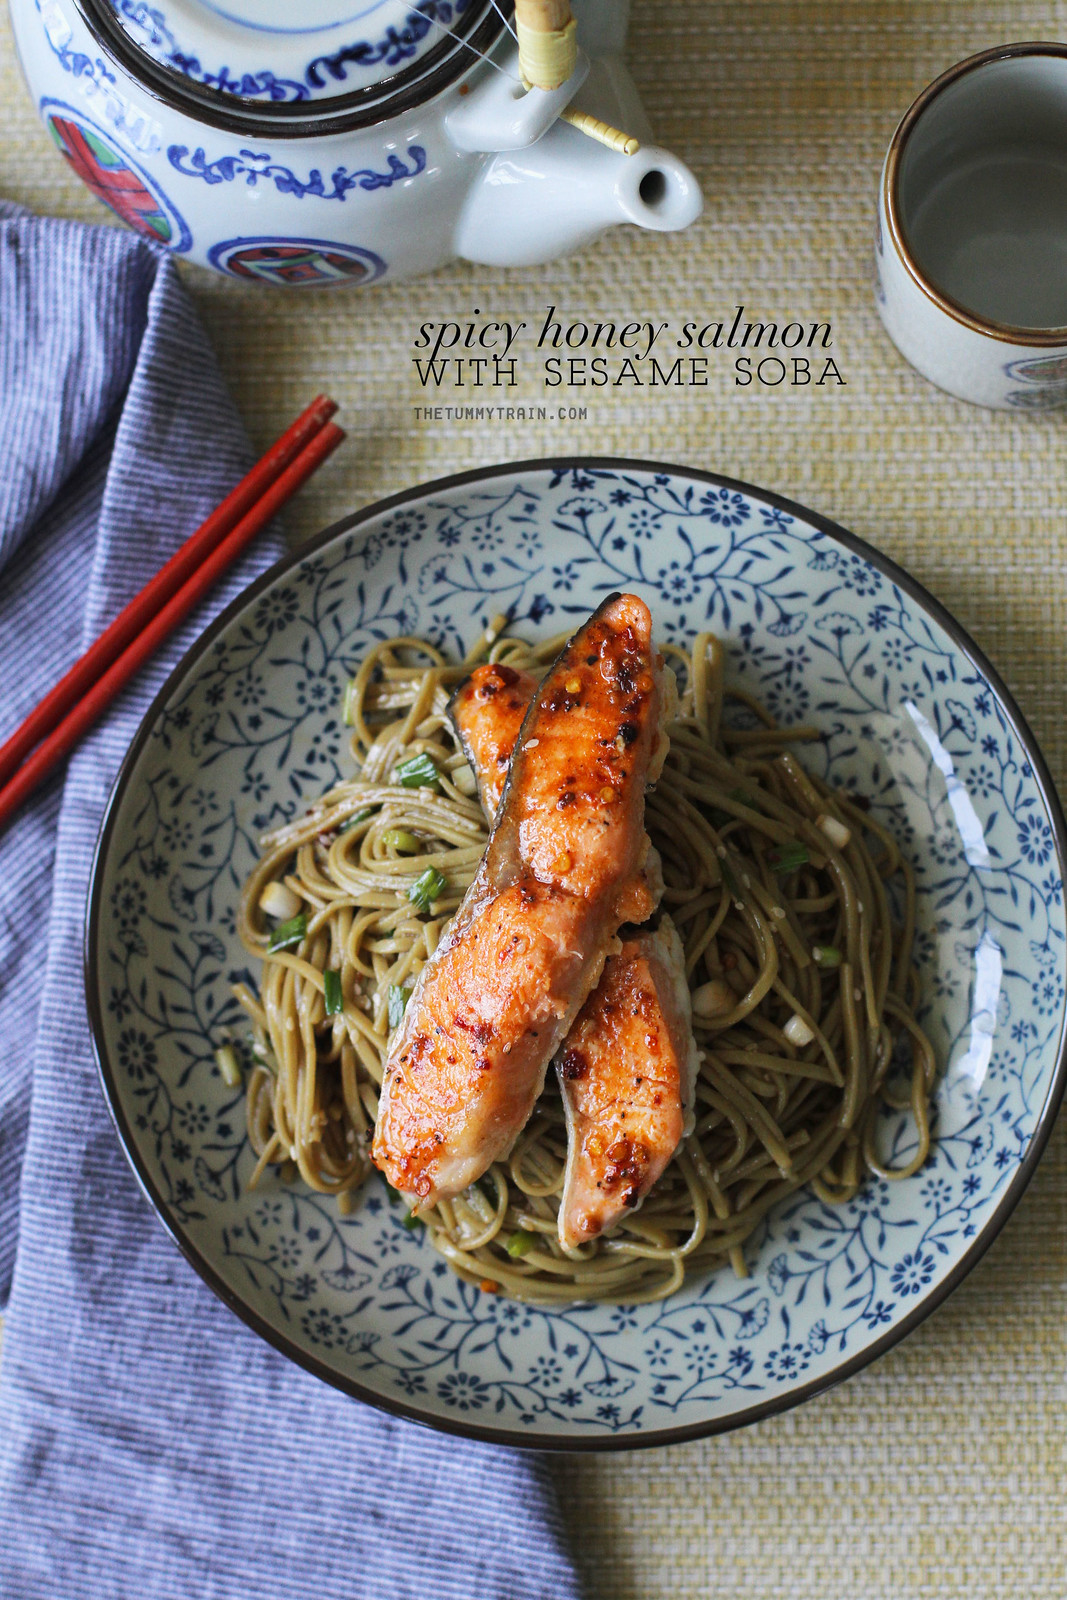 25097370184 7018c0aa46 h - My favourite Sesame Soba topped with sweet-spicy salmon